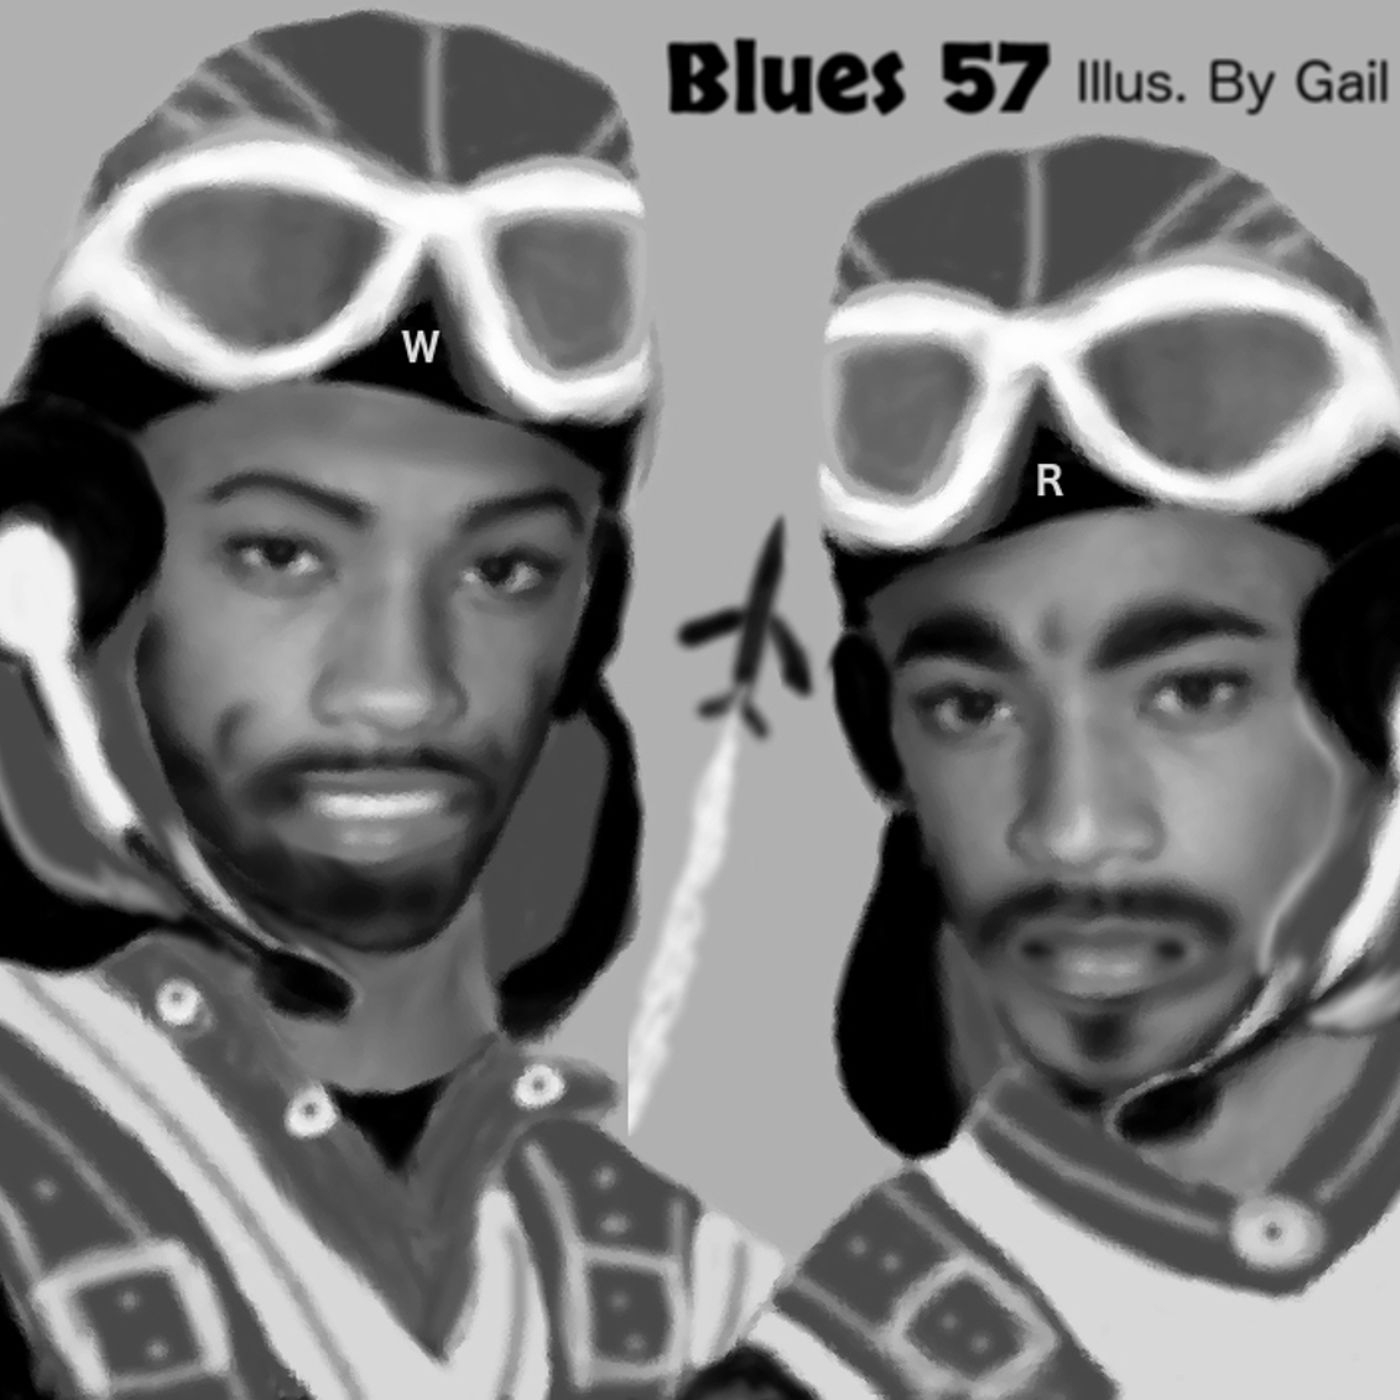 Blues 57 - Rosco and Willie - 8:14:20, 1.19 PM